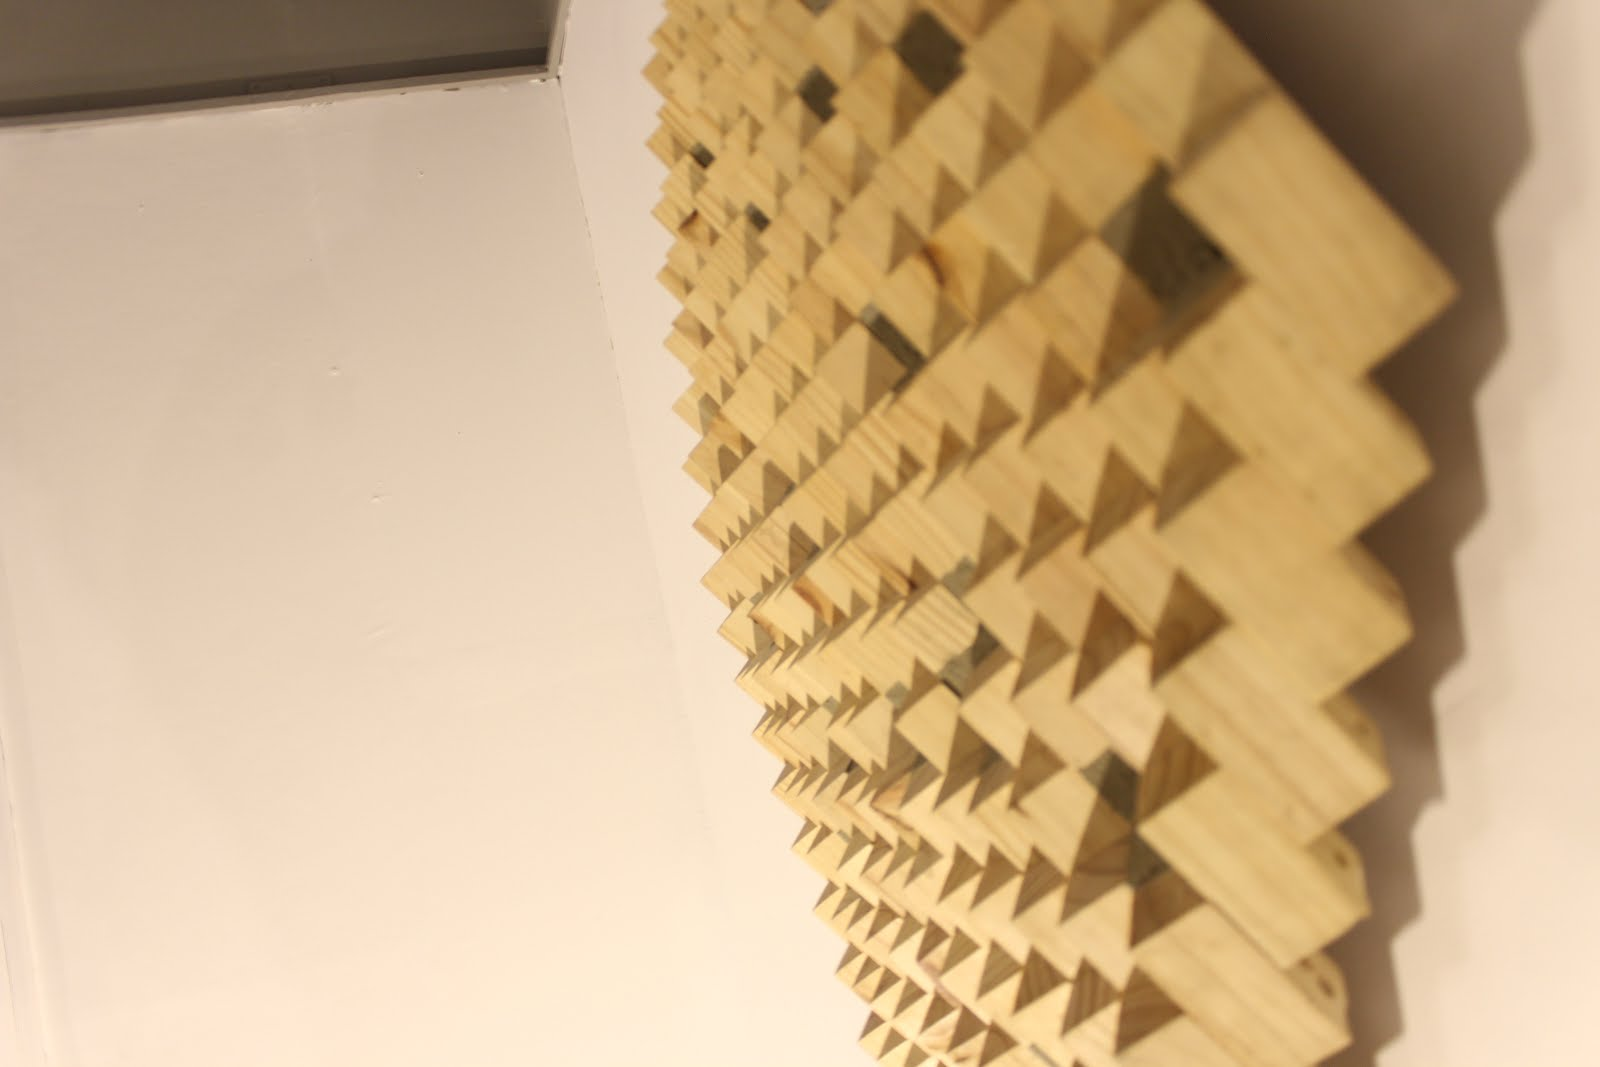 Jagged little pieces The visual poetry of Bryan Liao's Aggregate Abundances  Art, Bryan Liao, Aggregate Abundances, Wood, Sculpture, Cinematheque, Creative, Creativity, Culture, Visual Poetry, Woodcraft, Honeycomb, Pattern, Tesselate